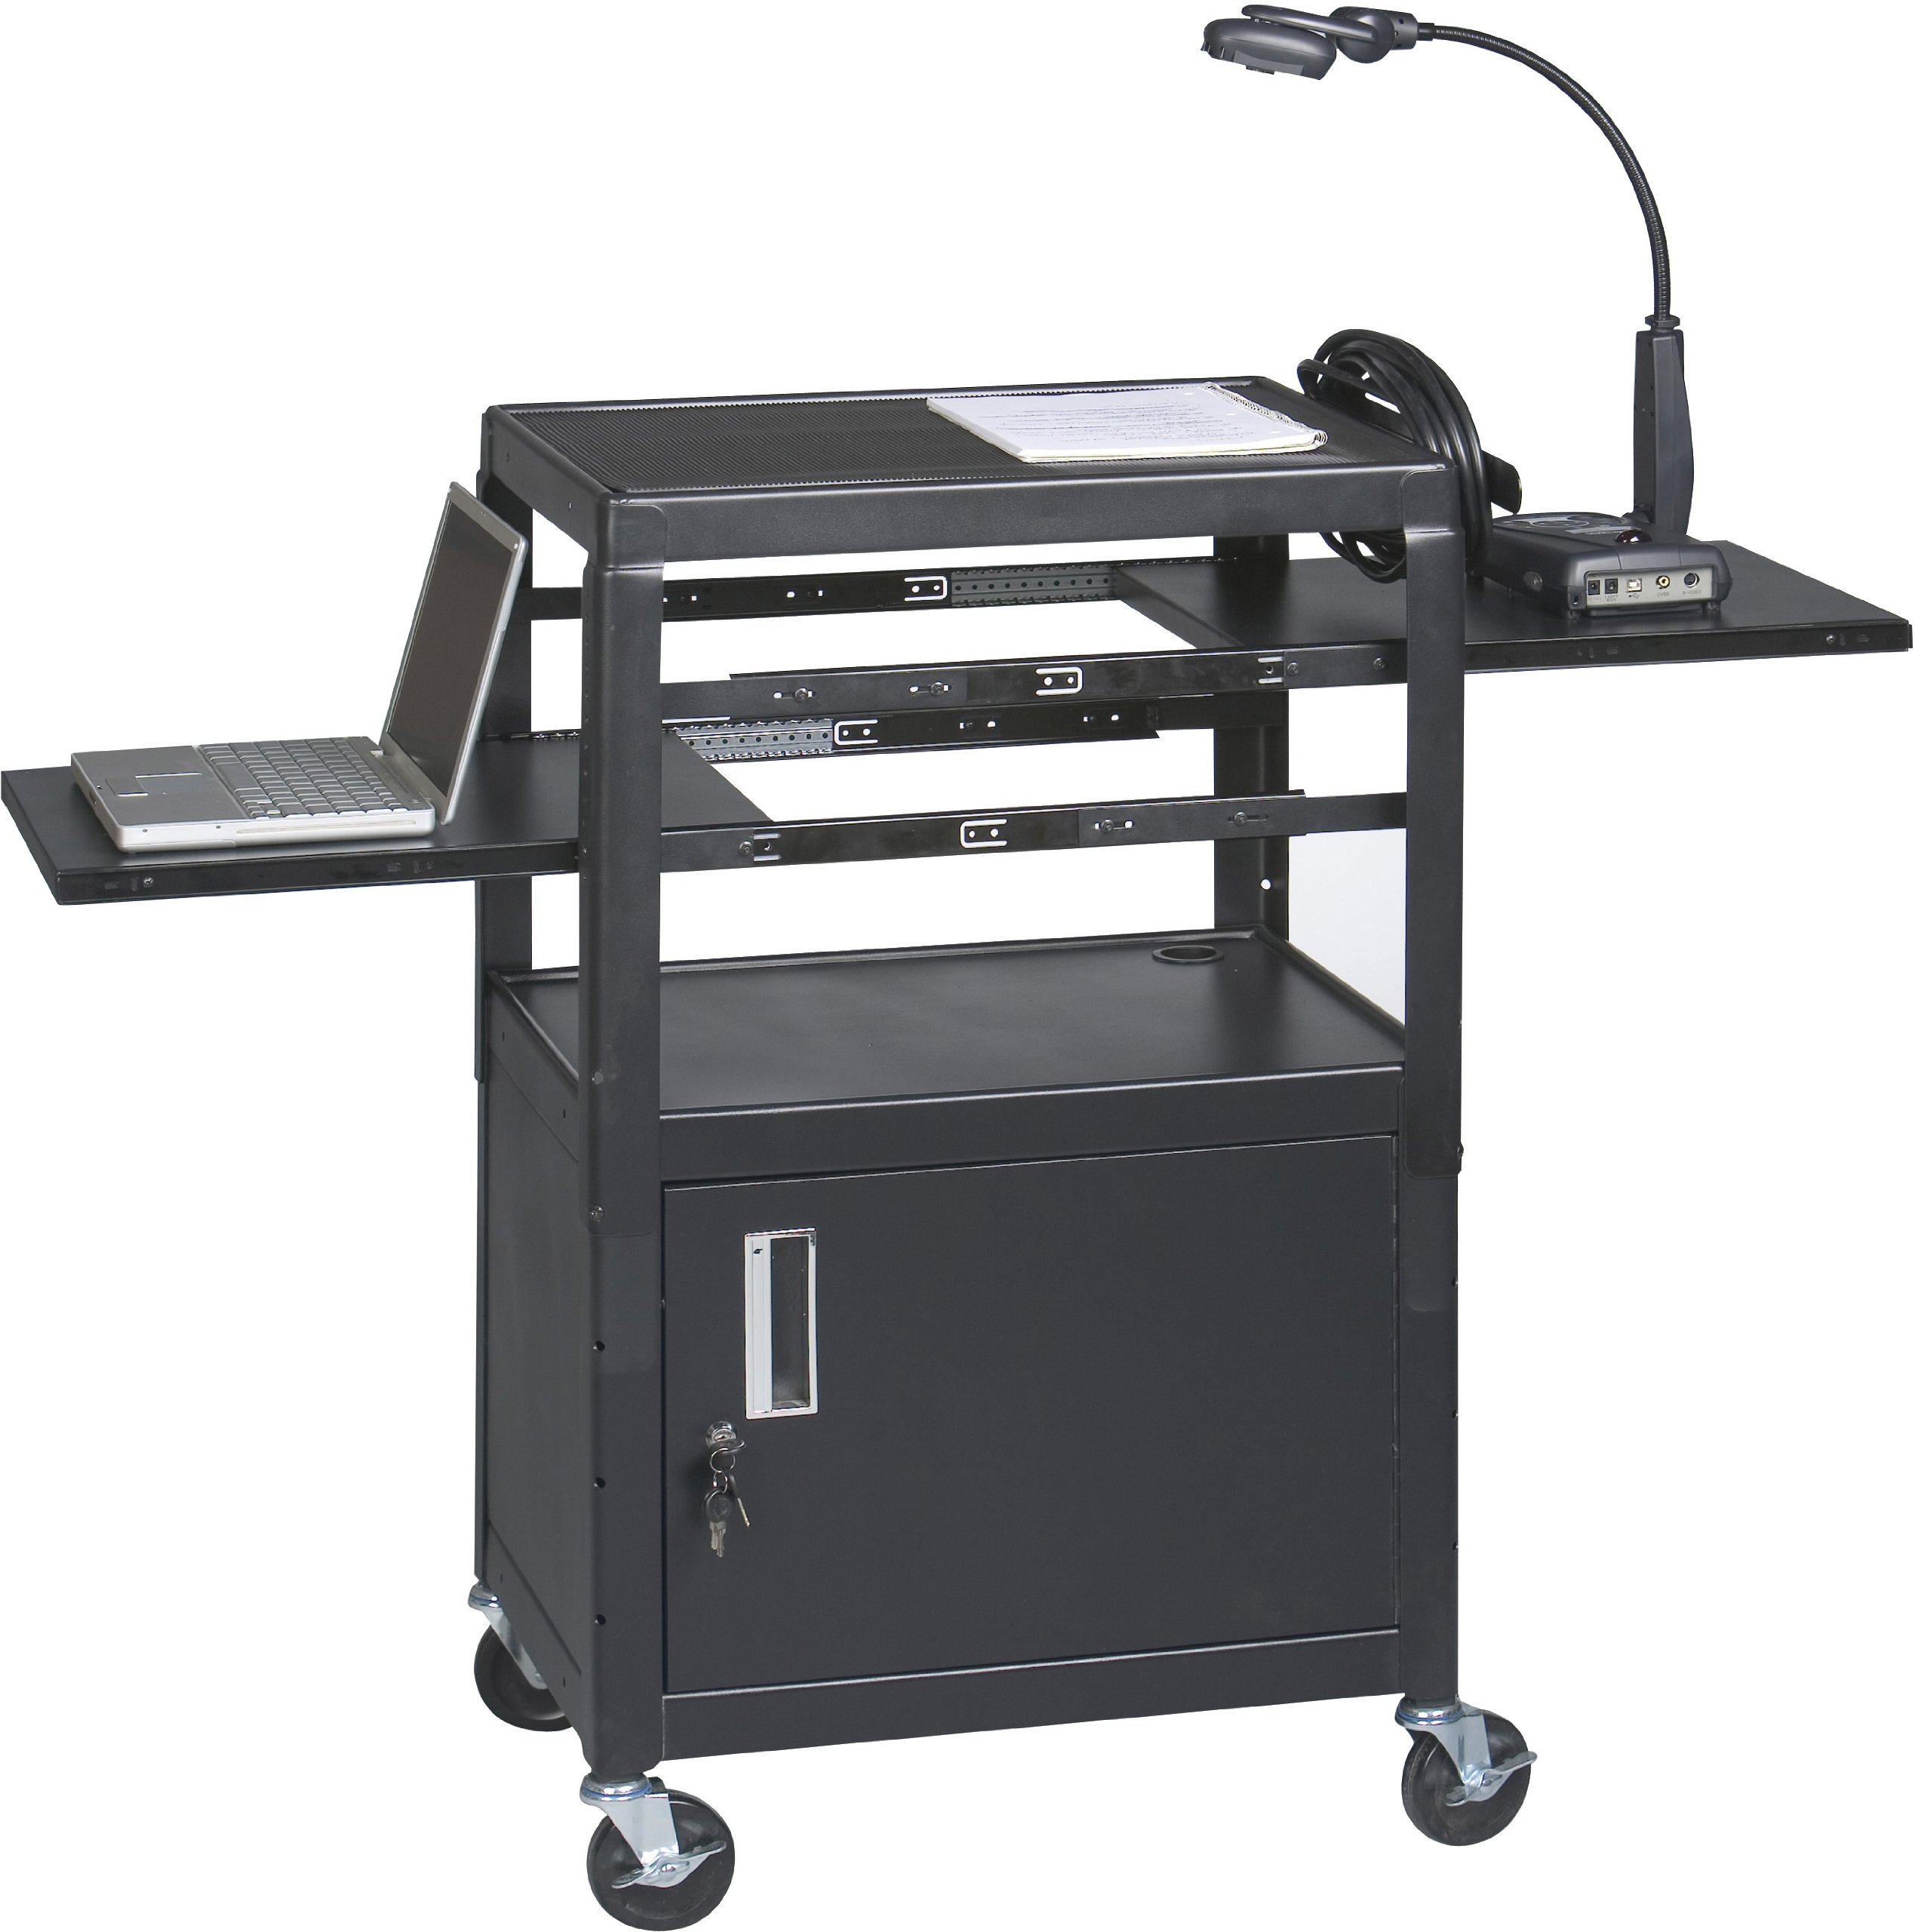 Balt Dual Adjustable Height Laptop Cart with 2 Pull-Out Shelves and a Locking Cabinet by Balt